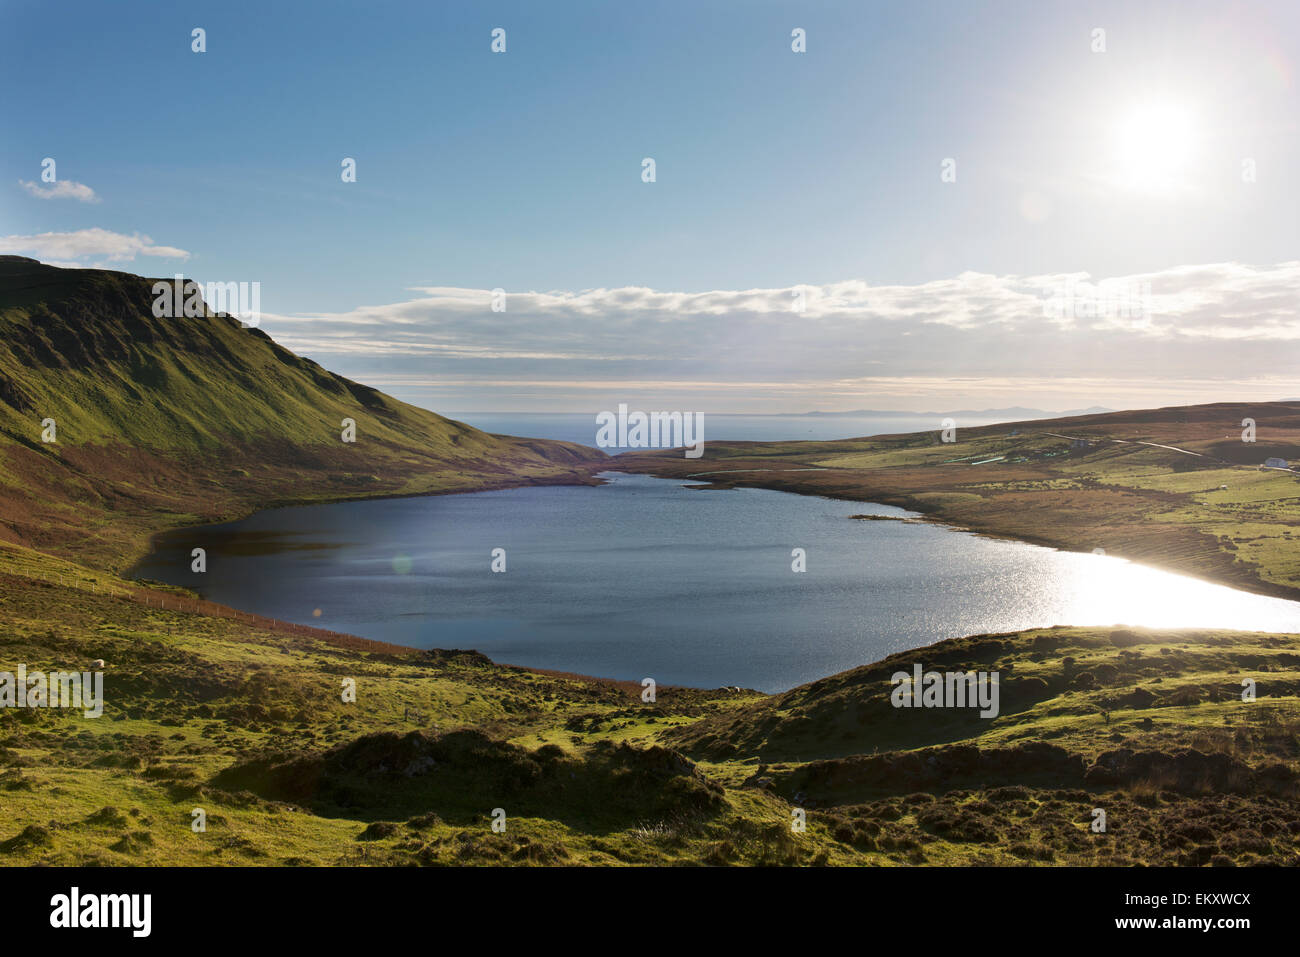 View of Loch Mor, with Moonen Bay in the distance, on the way to the Neist Point Lighthouse on the Isle of Sky in Stock Photo